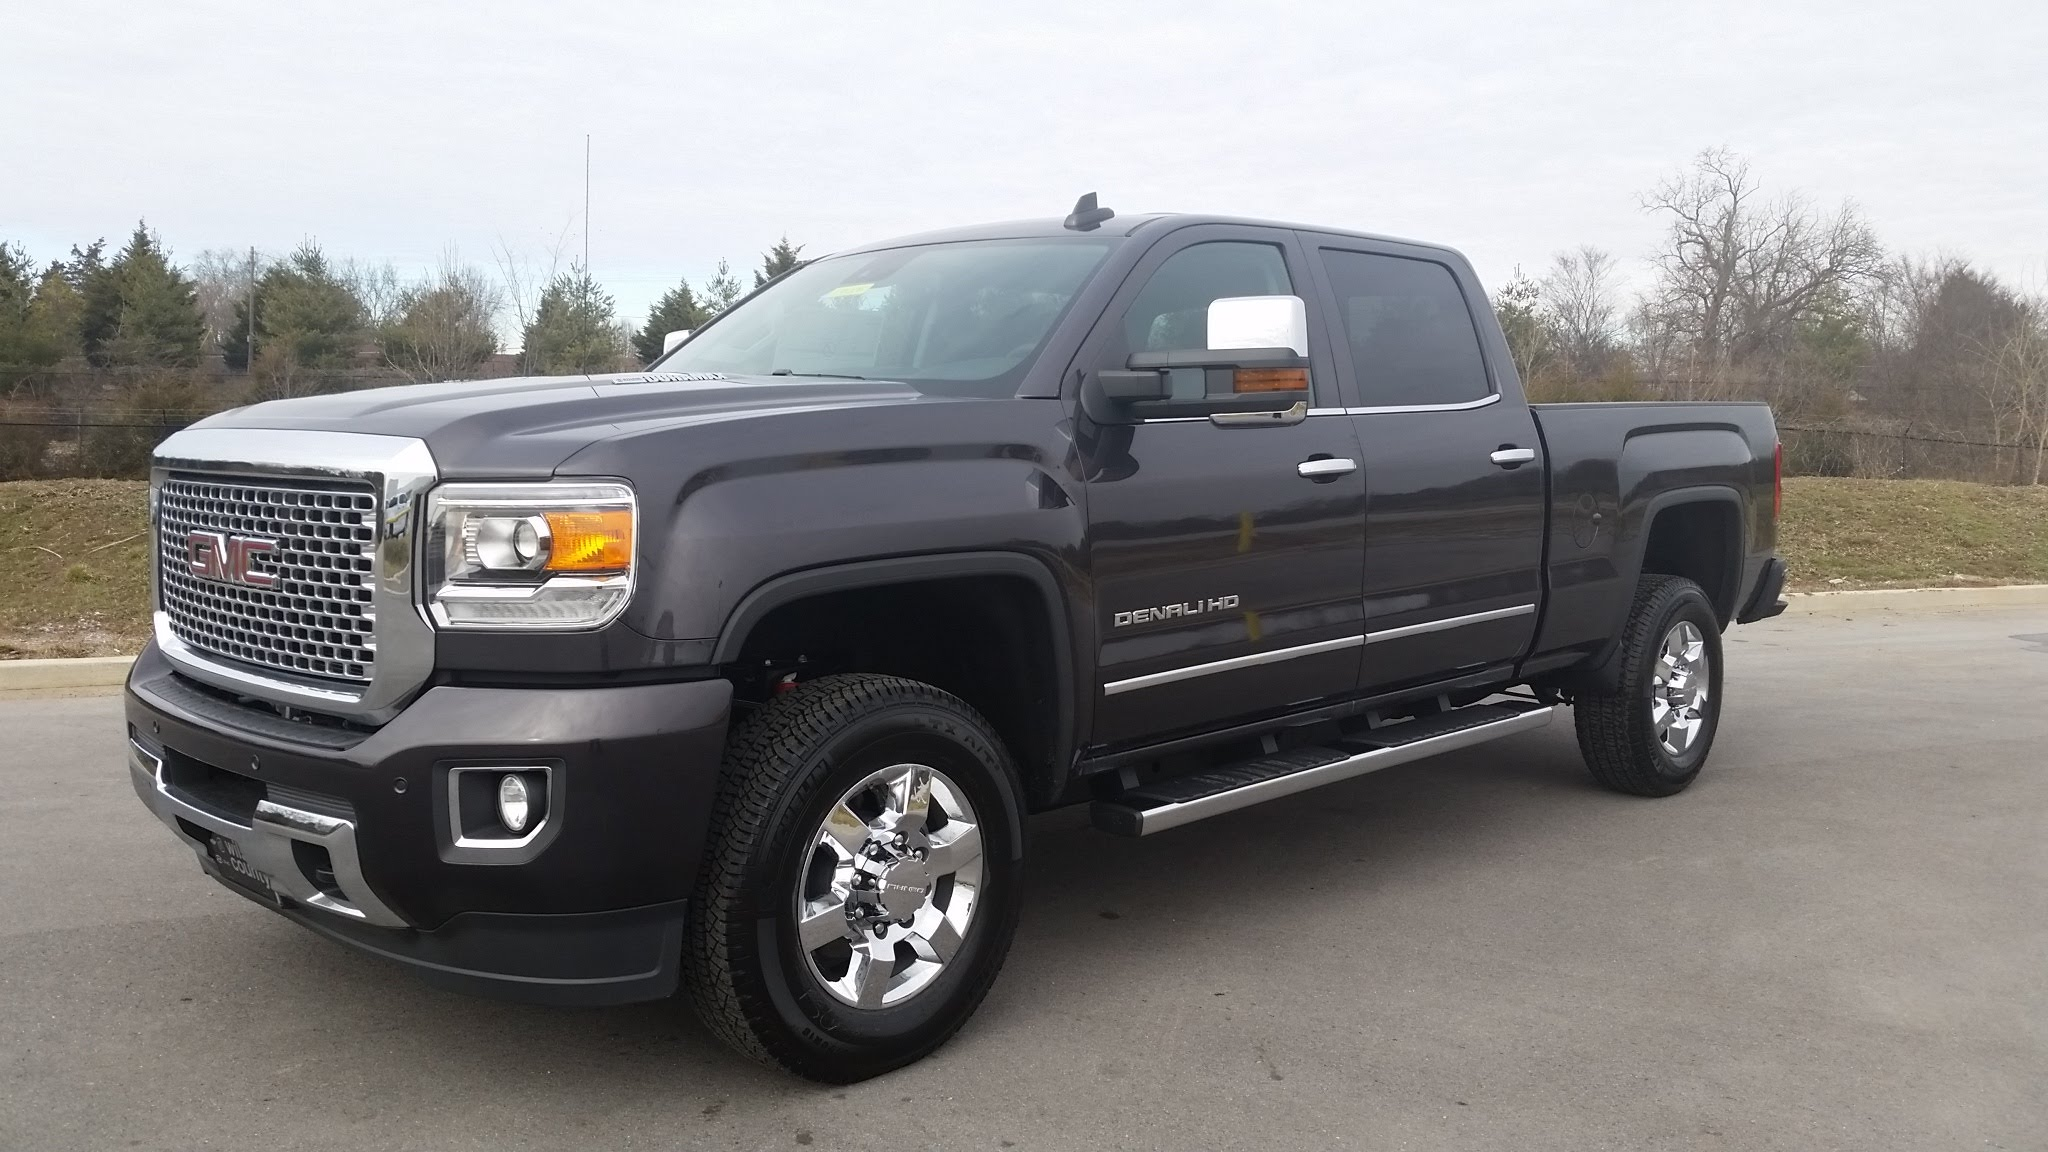 2015 gmc sierra 3500hd photos informations articles. Black Bedroom Furniture Sets. Home Design Ideas